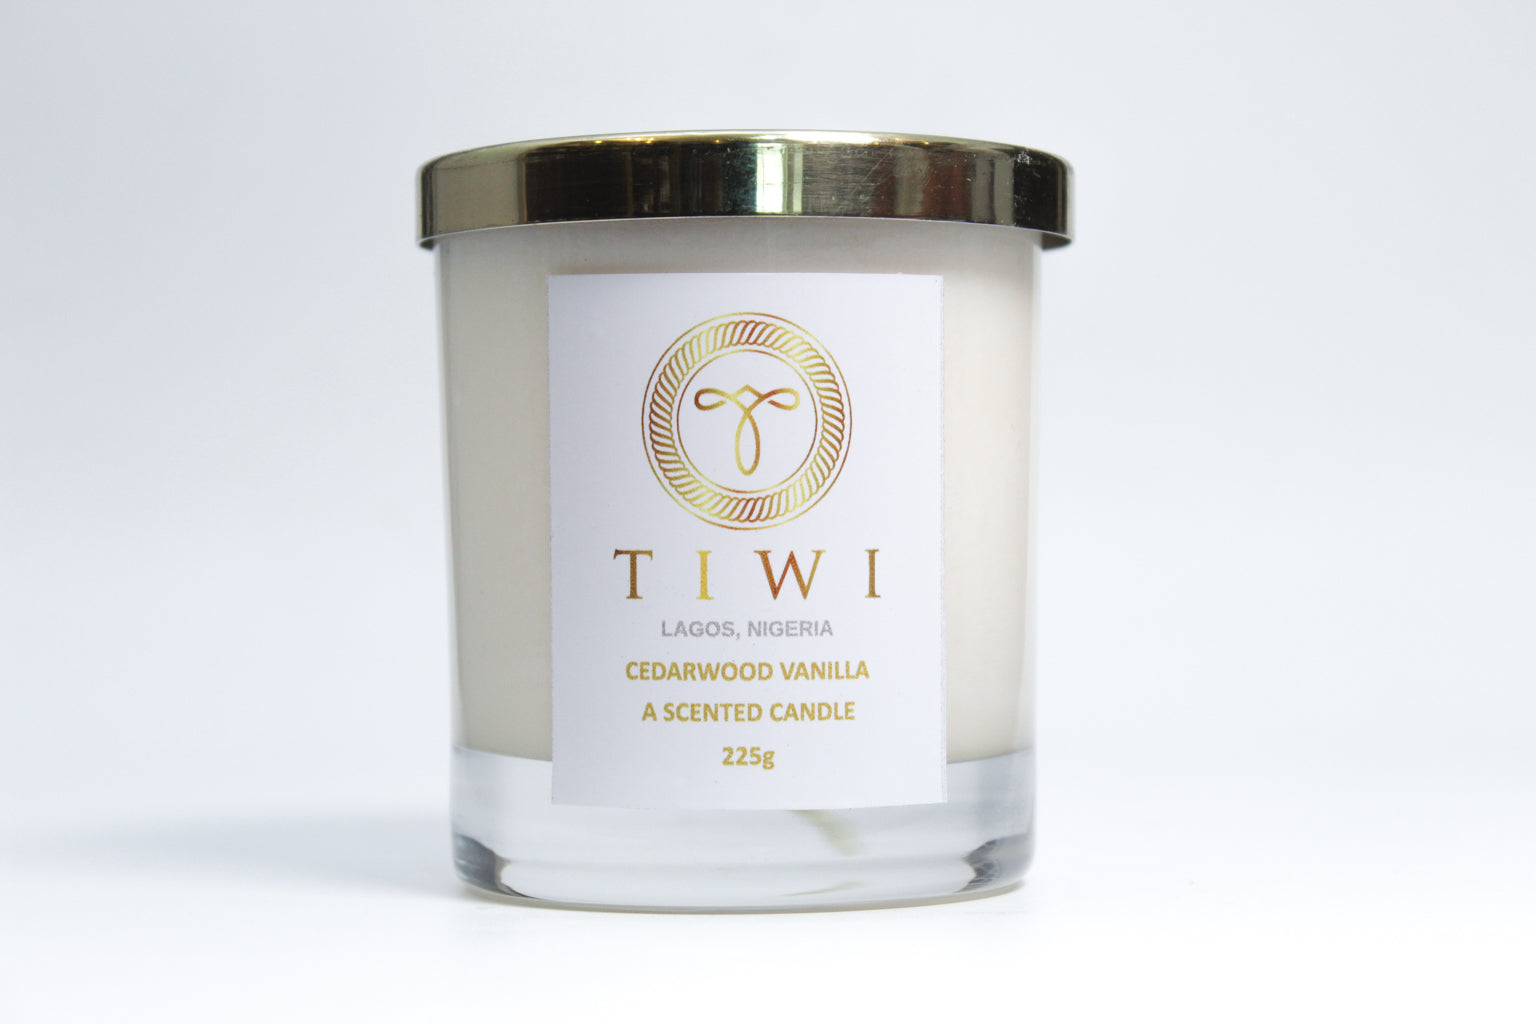 TIWI Cedarwood Vanilla - A Scented Candle